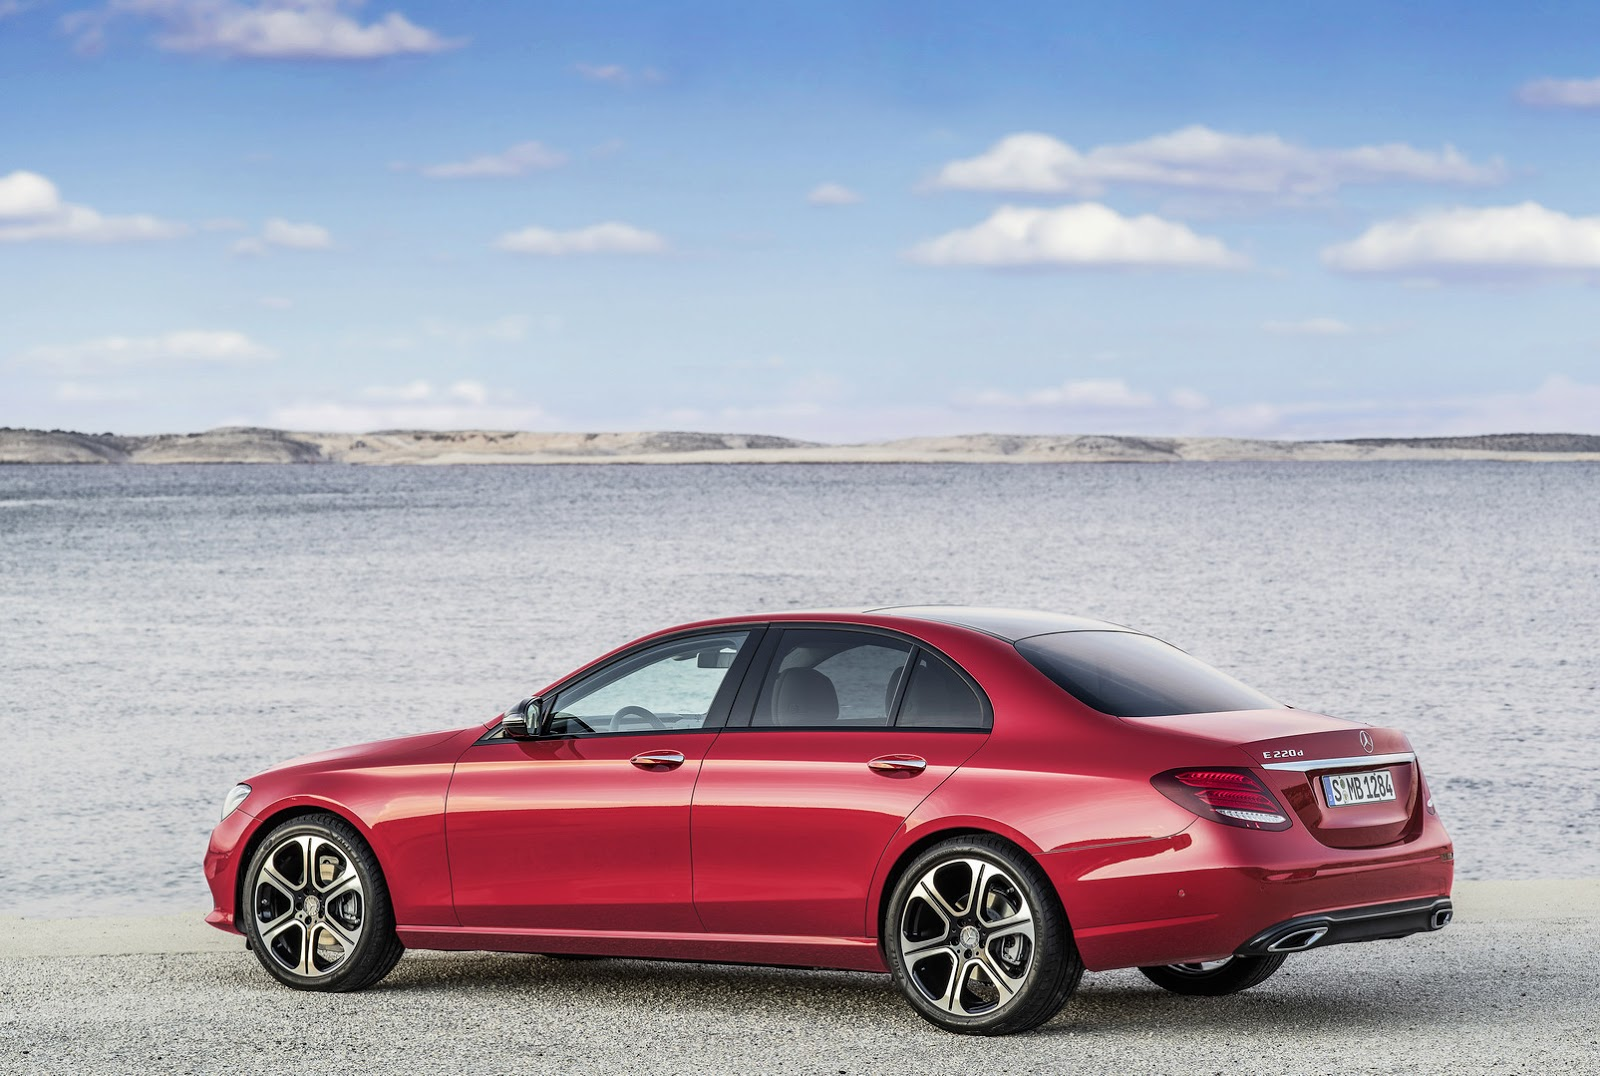 new 2017 mercedes benz e class will launch in the us with 241hp 2 0l turbo 50 pics video. Black Bedroom Furniture Sets. Home Design Ideas